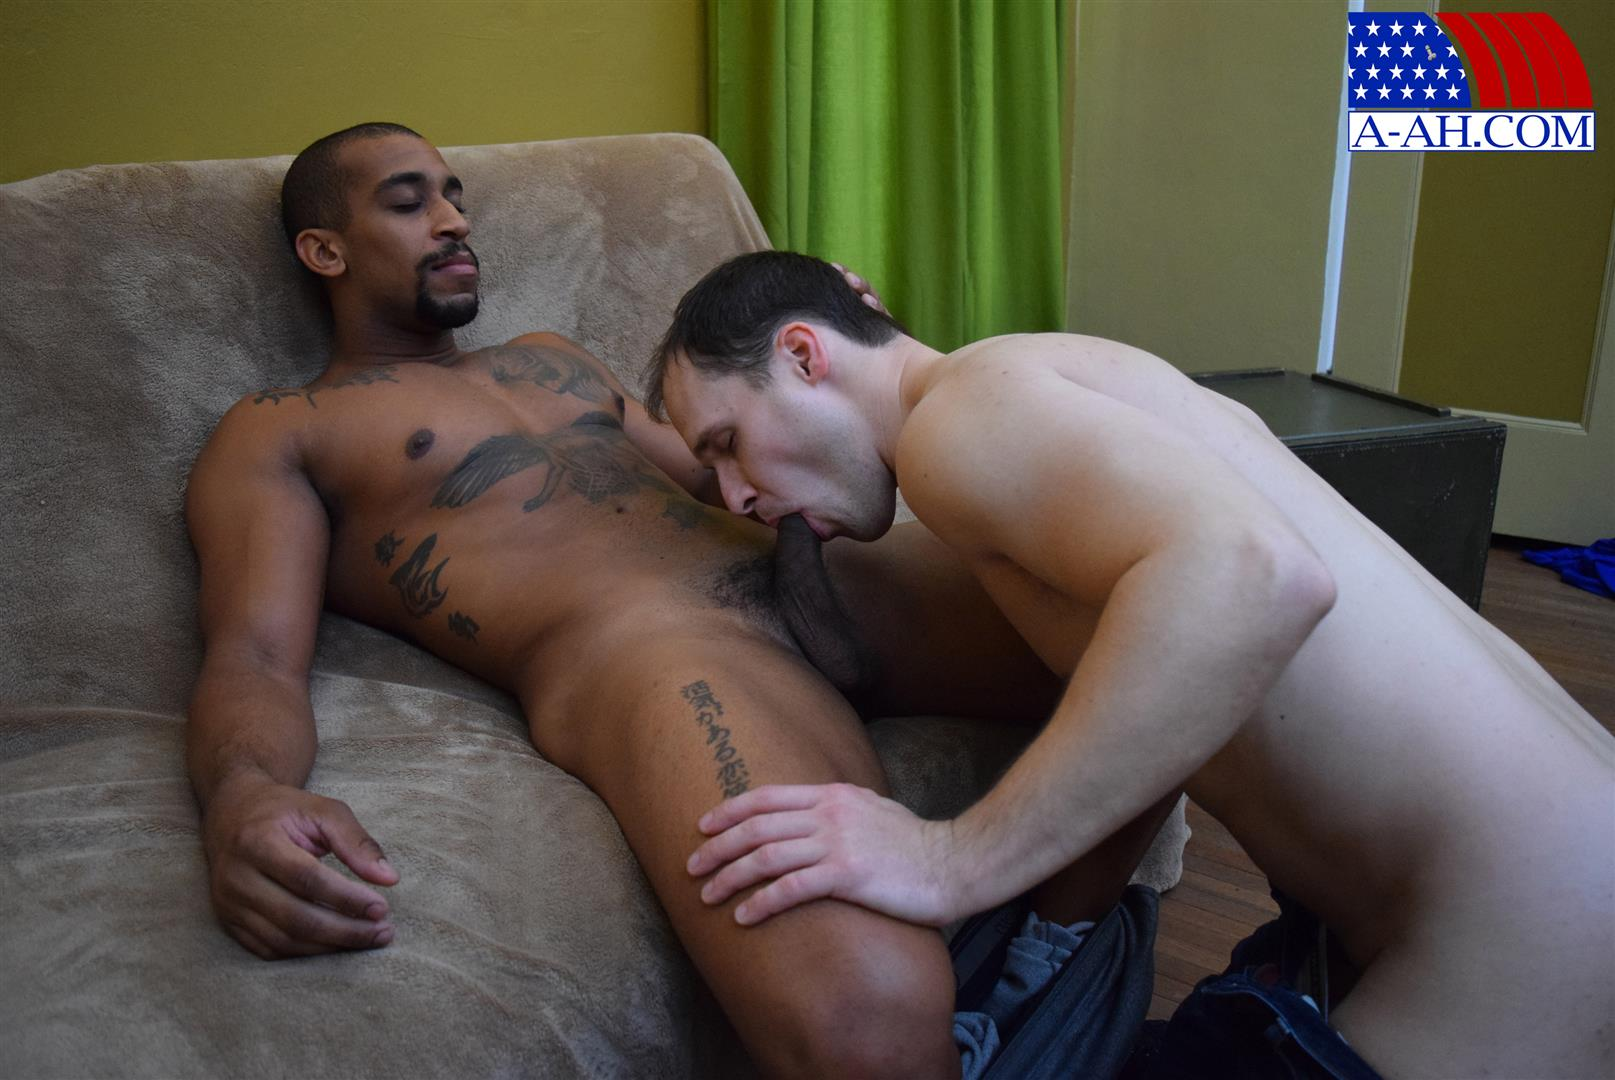 all gay porn videos Enjoy!